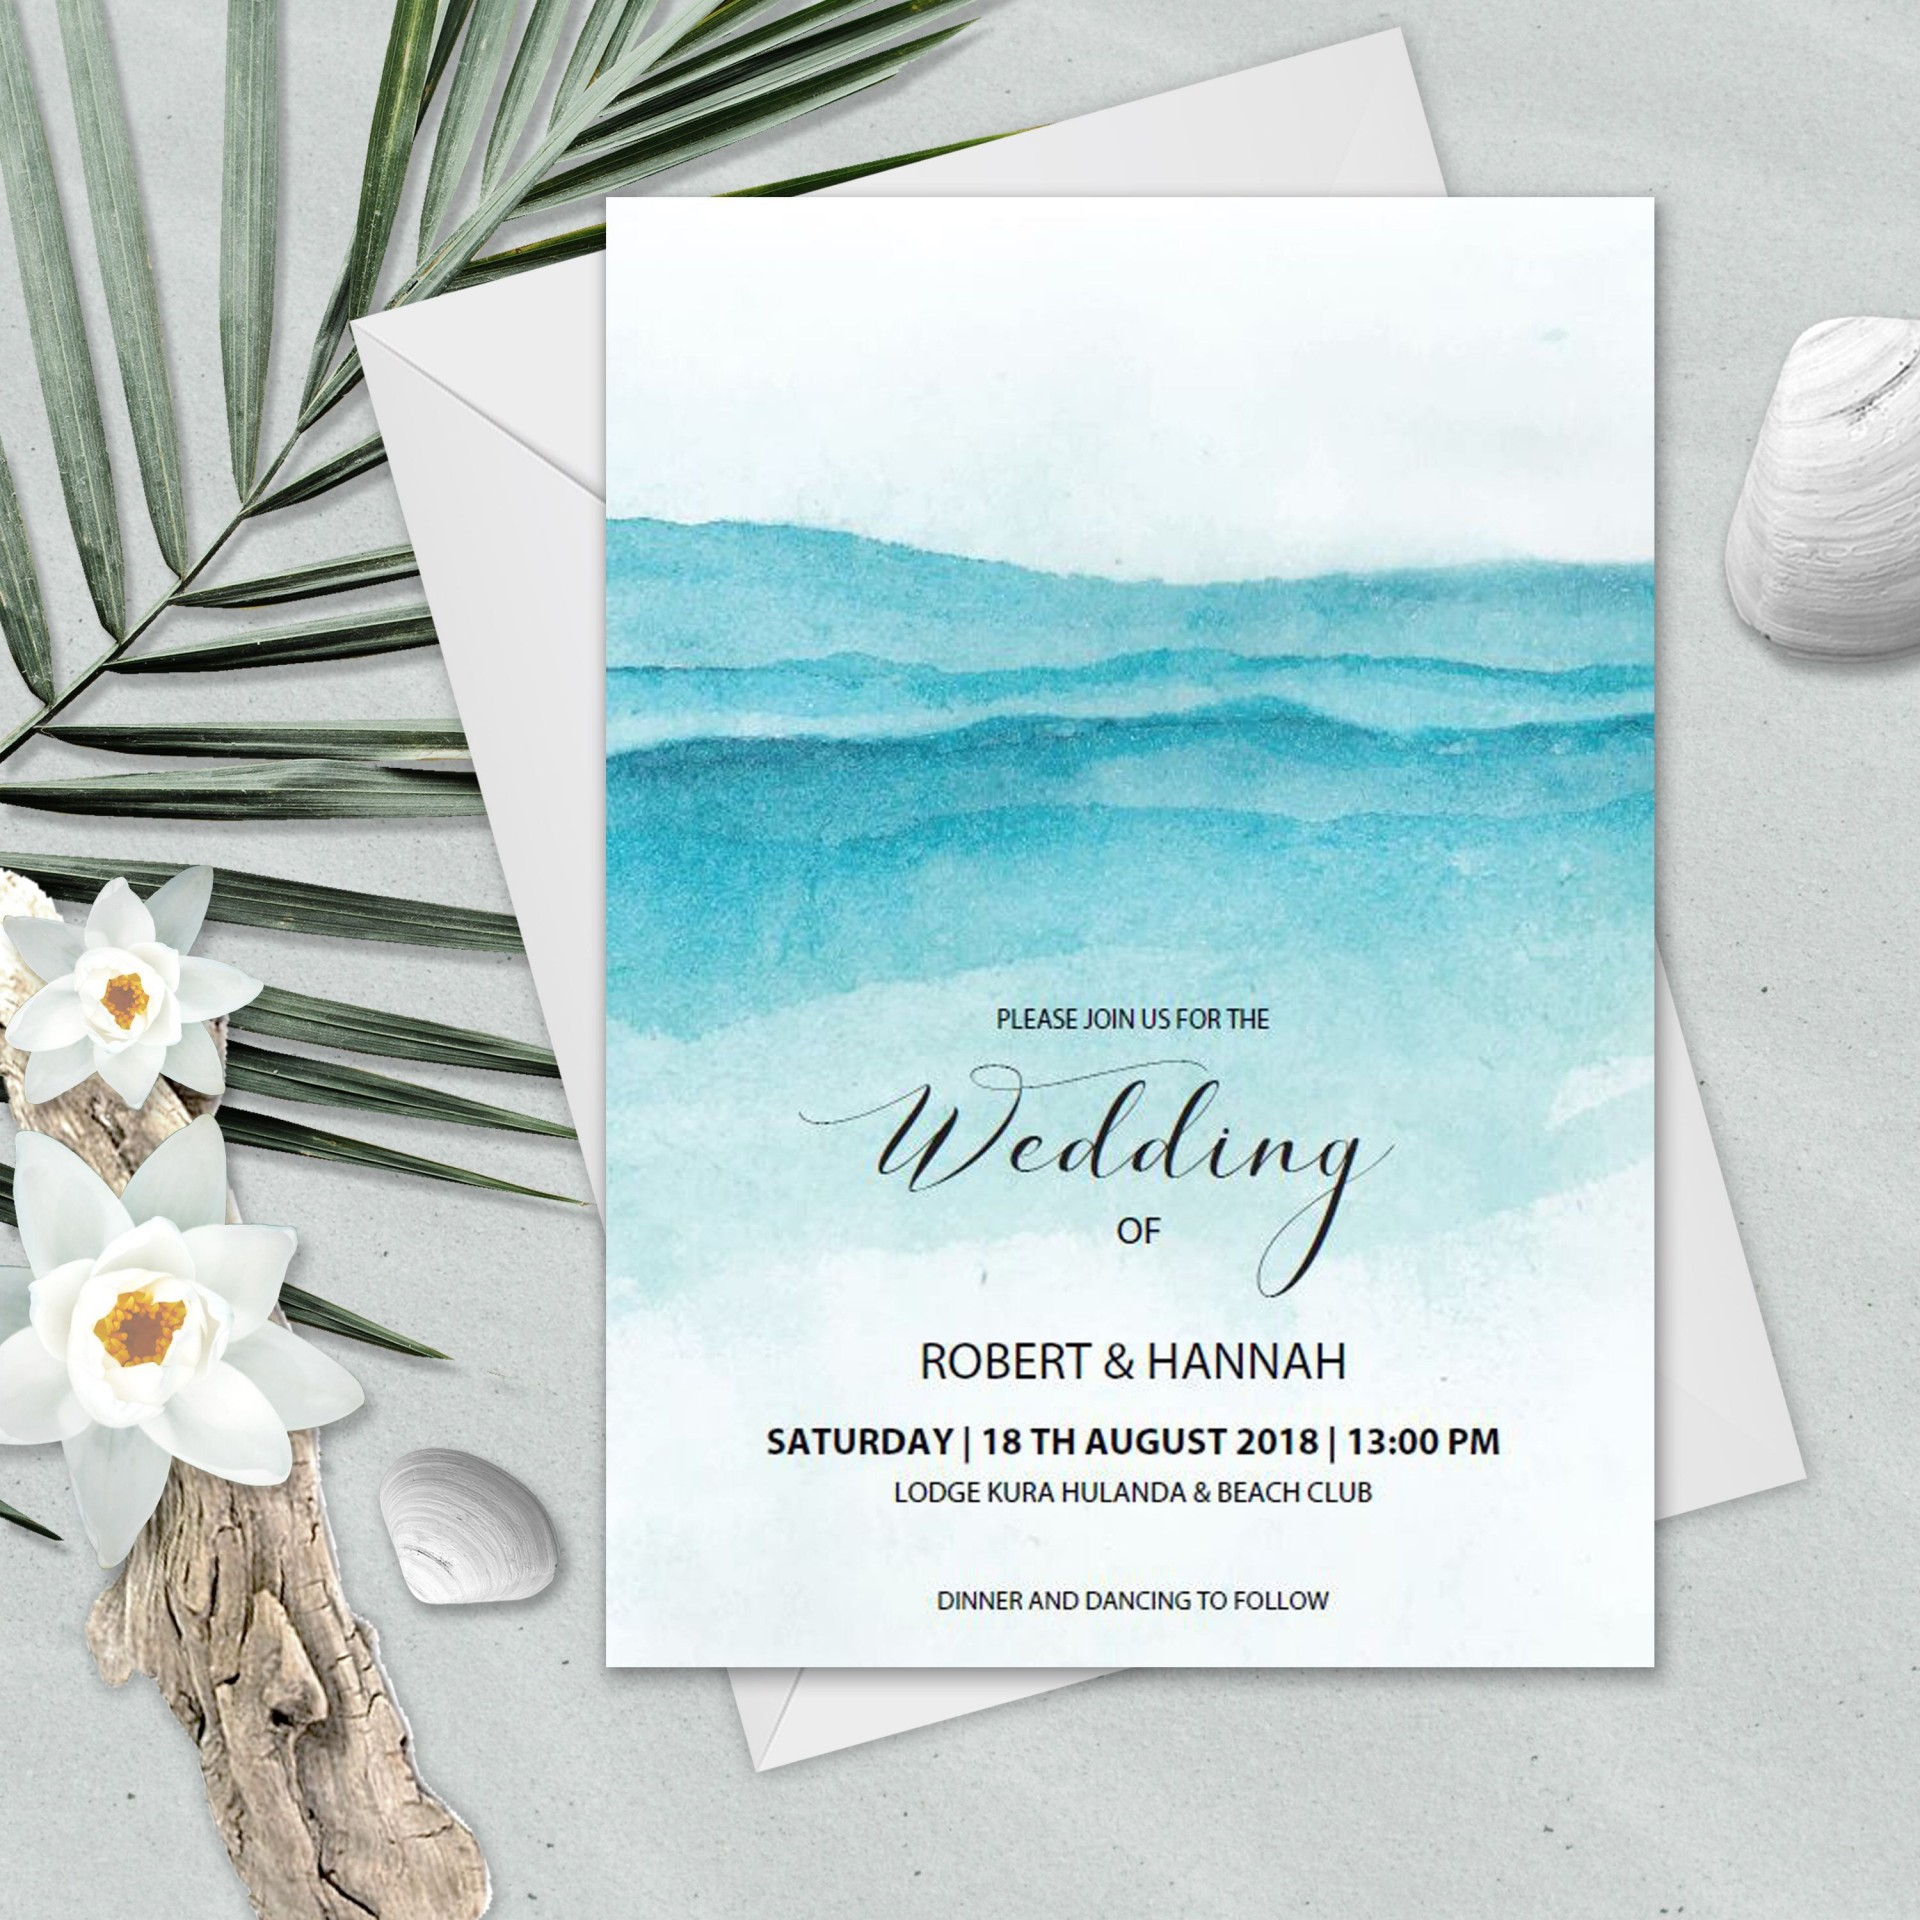 006 Unforgettable Beach Wedding Invitation Template Design  Templates Free Download For Word1920